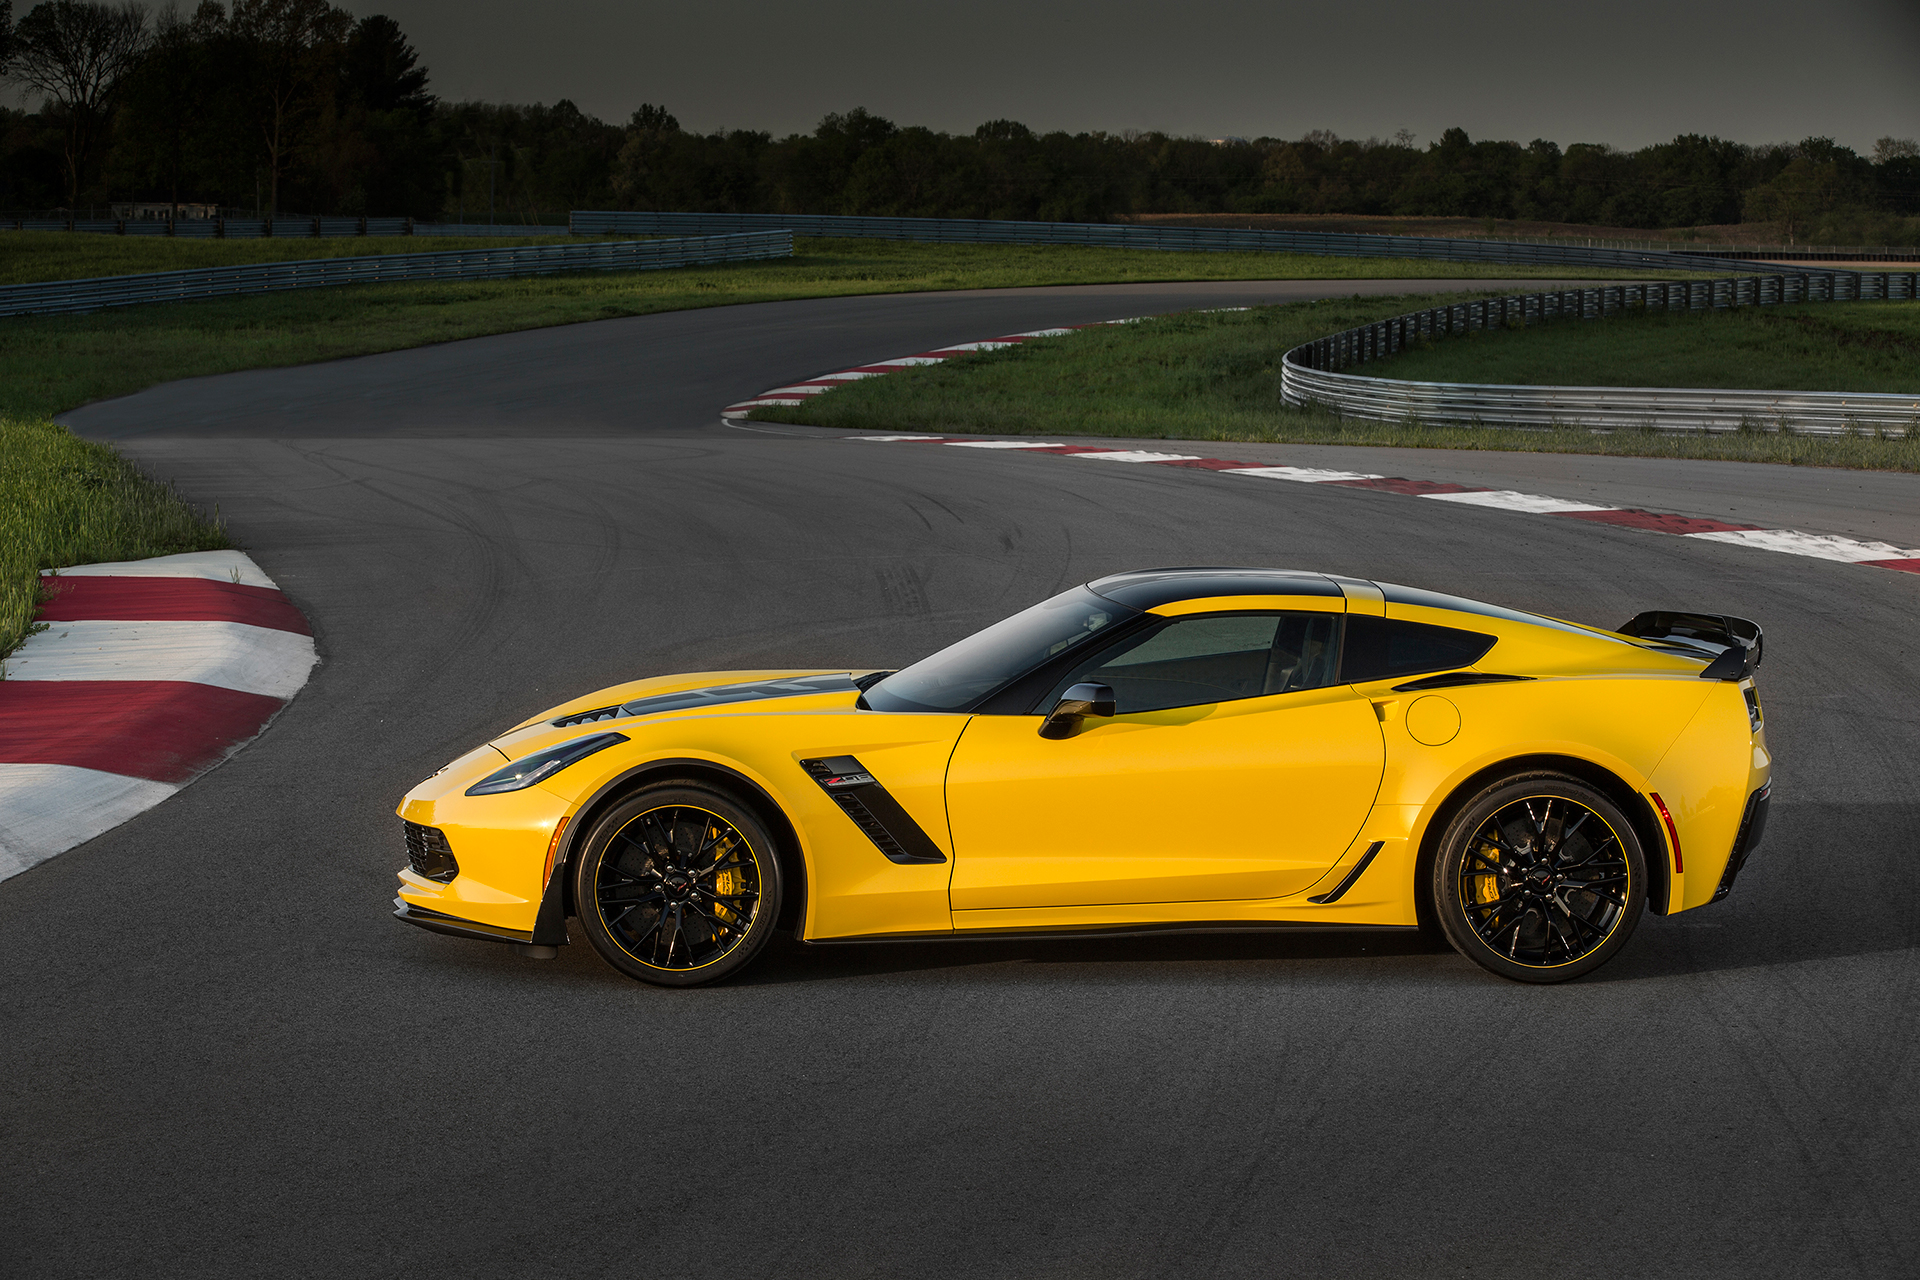 Chevrolet Corvette Z06 2016 C7.R Edition - profil / side-face - General Motors